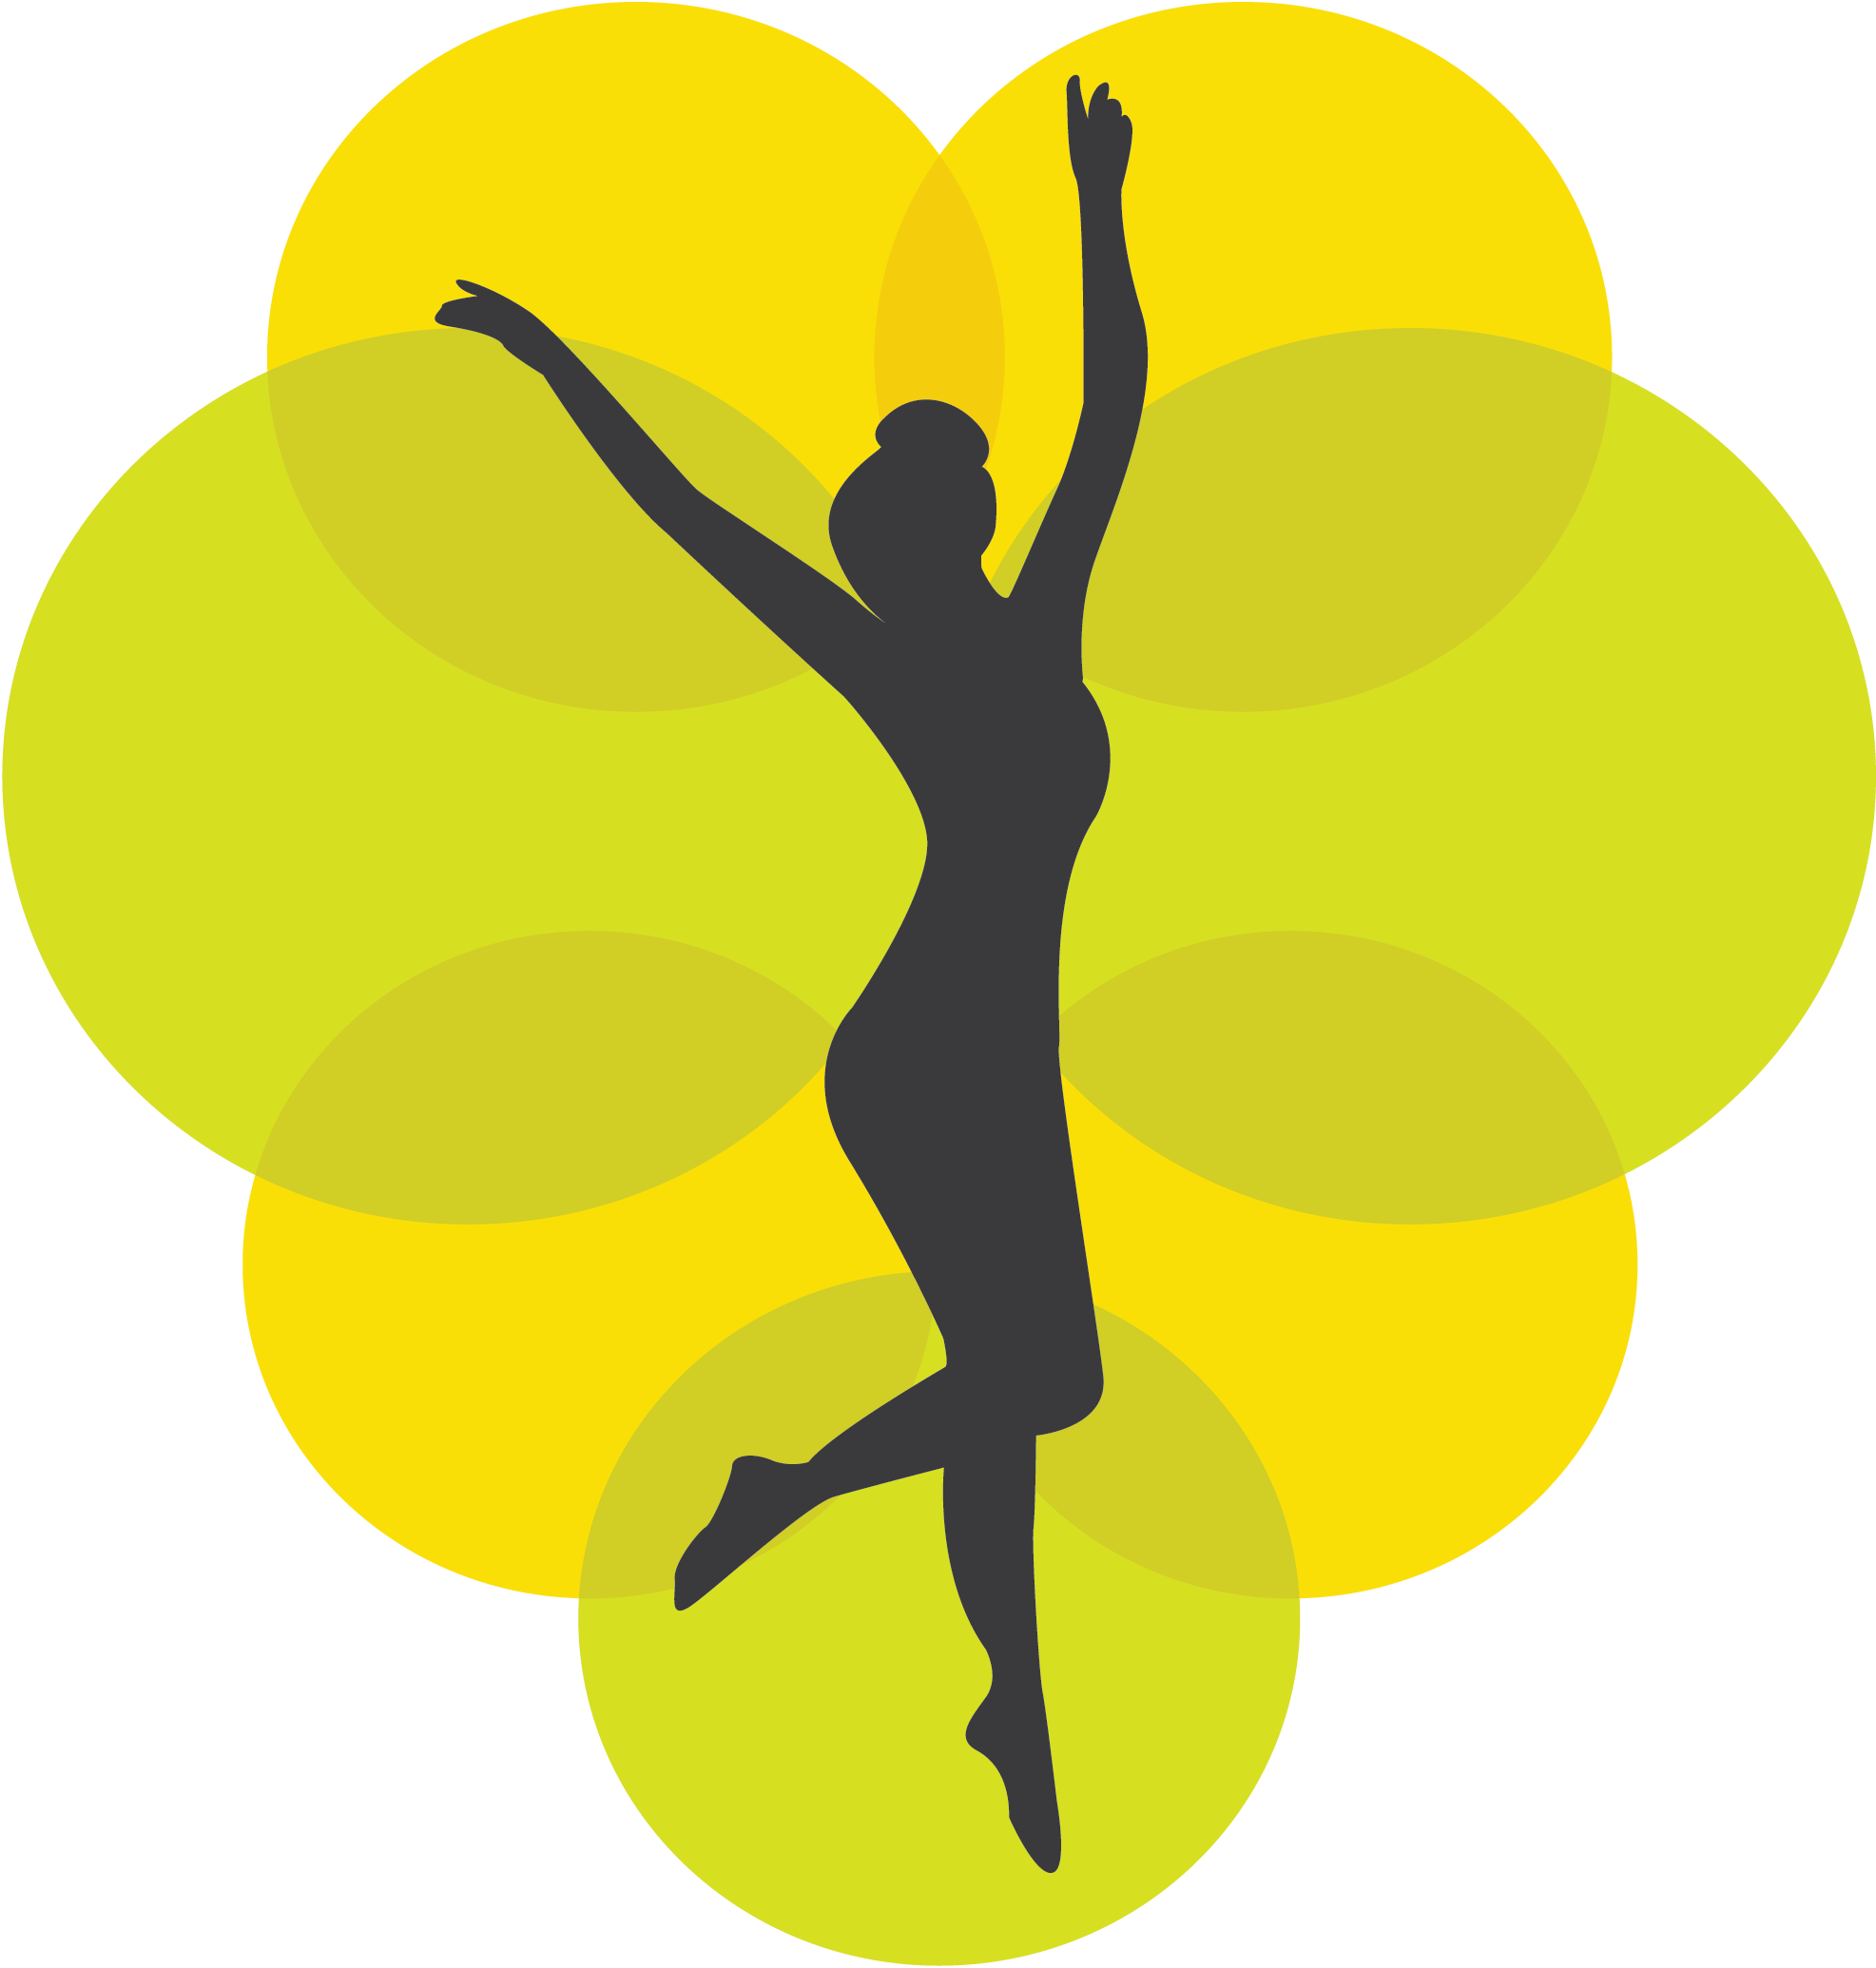 Nutrition clipart physical wellness. Breathe easy fitness plus